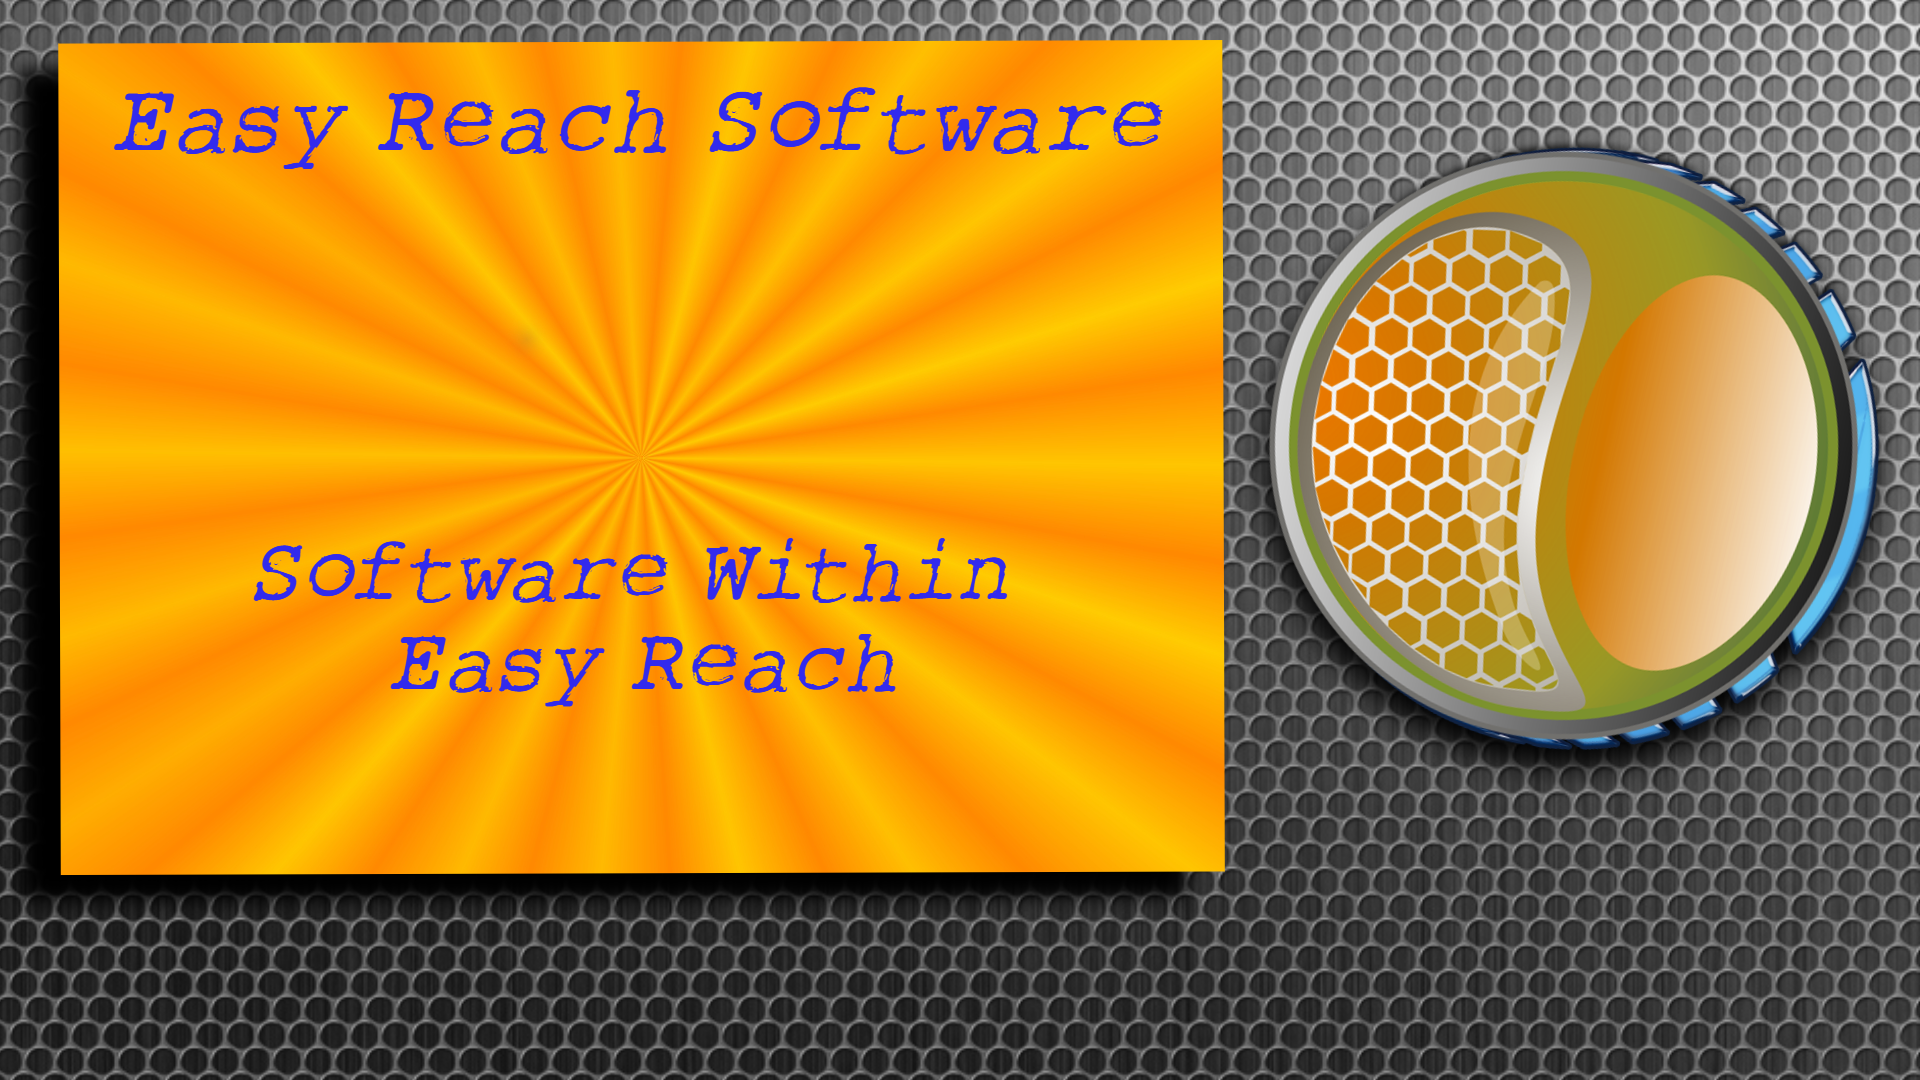 Easy Reach Software